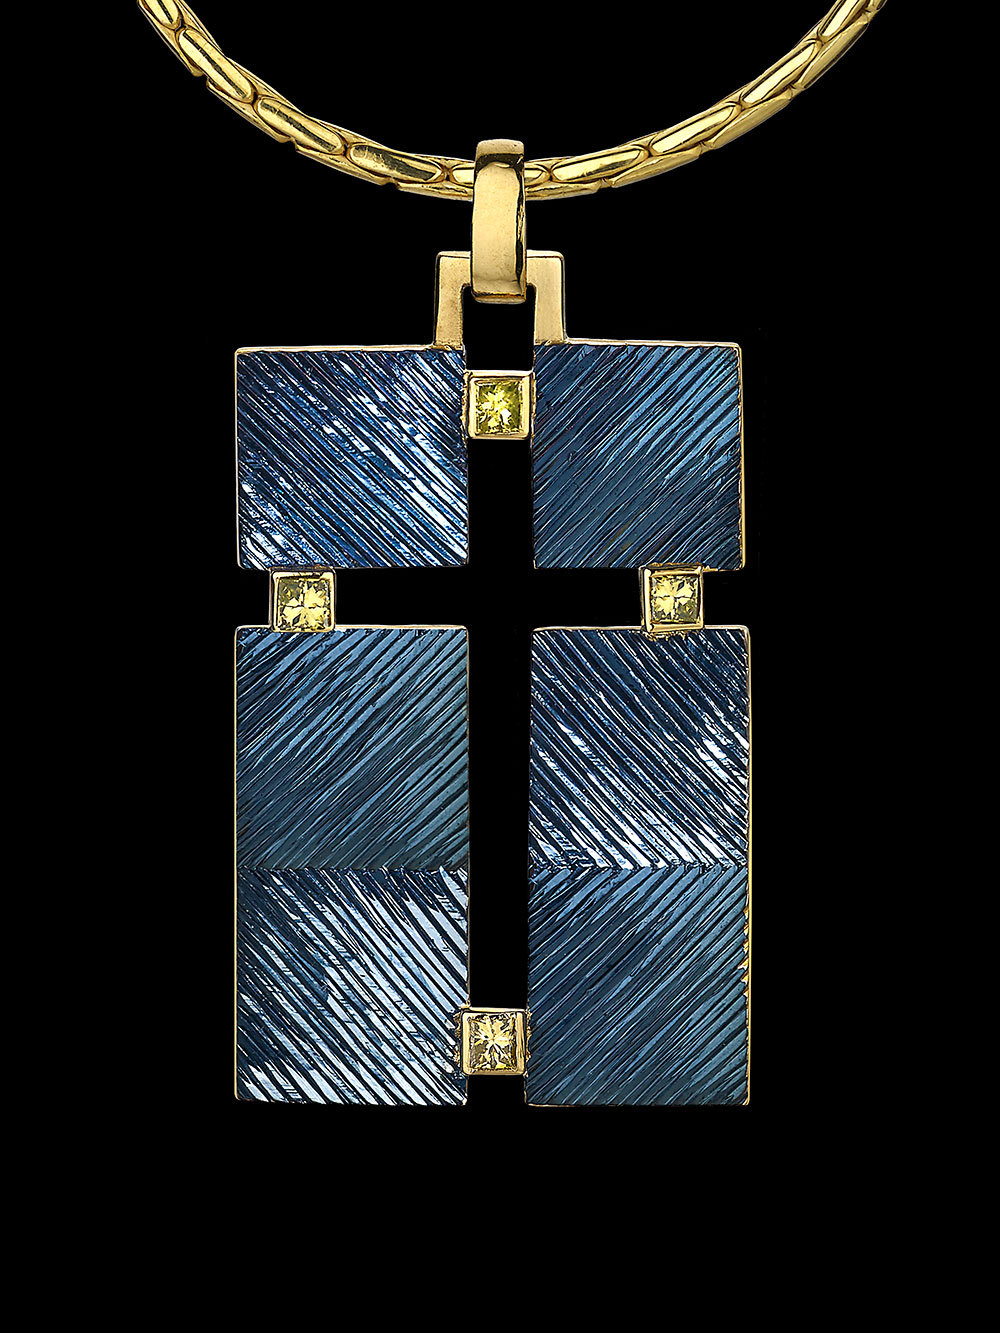 "<a href=""/node/270"">""THE CROSS THAT ISN'T THERE""  Silver and 18ct gold, Gilding and Rhodium plate / Hand Engraved / Set with 4 square treated yellow diamonds. photo : Simon B Armitt 2017</a>"